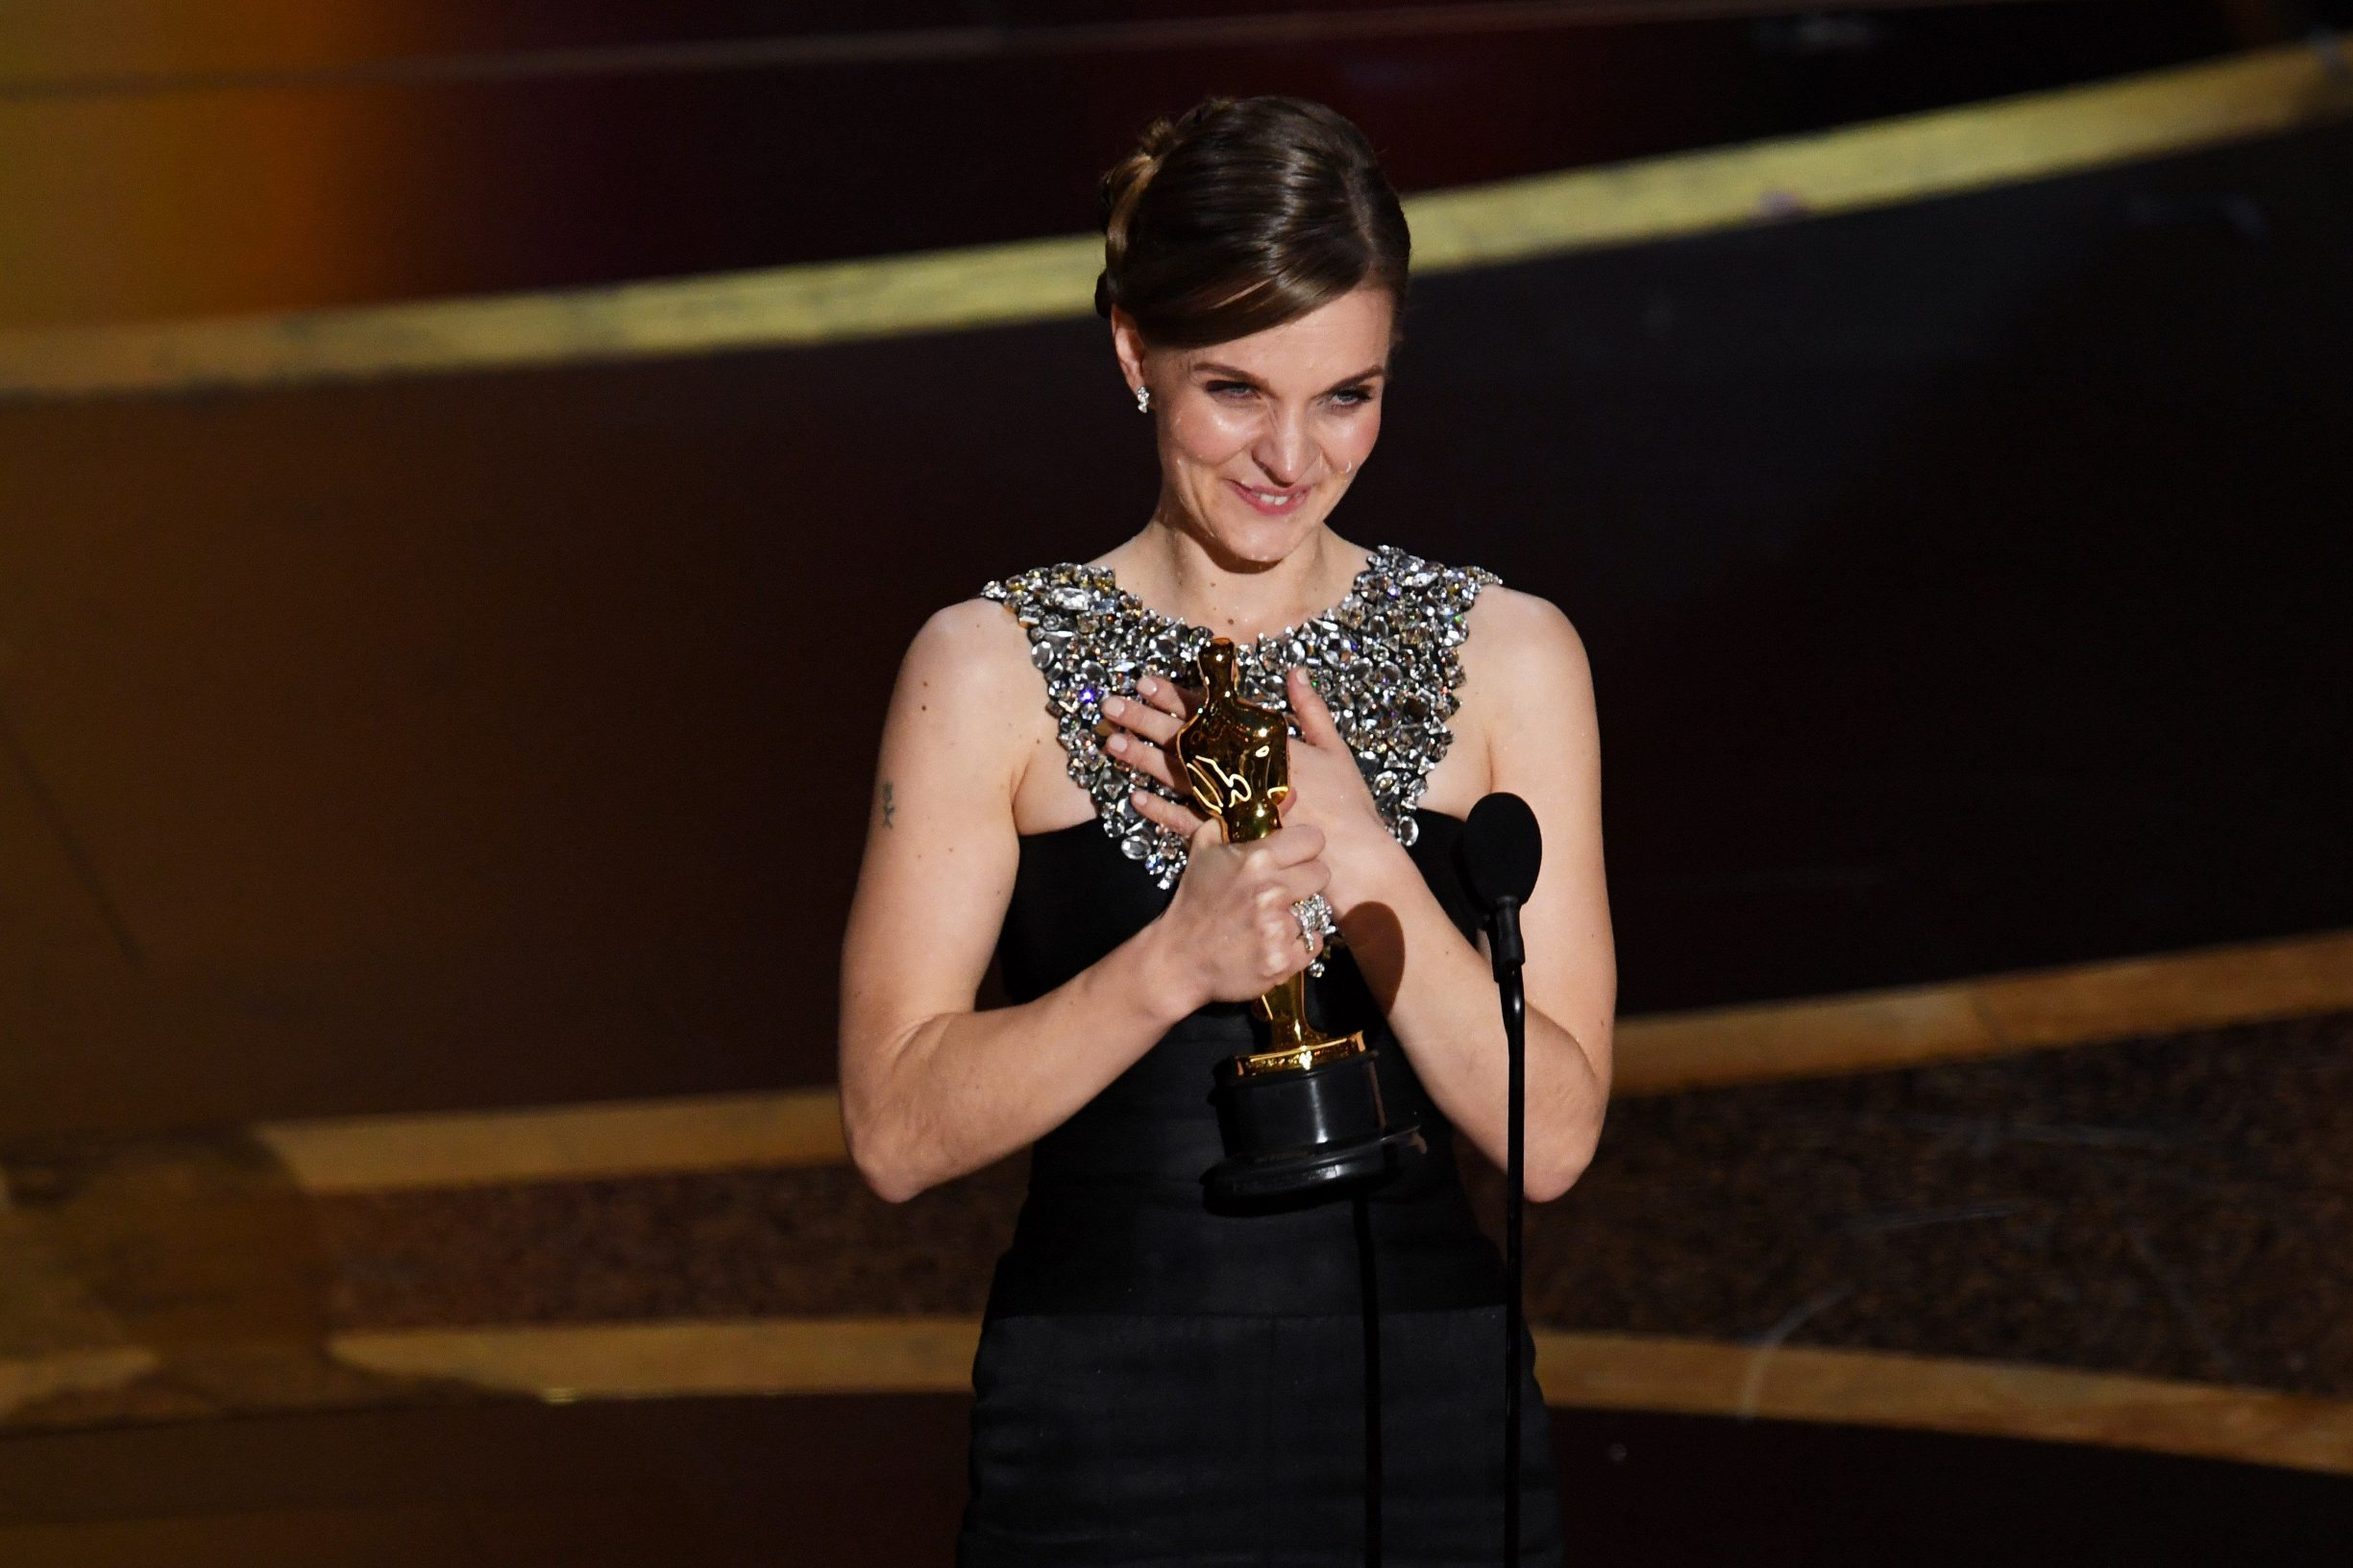 HOLLYWOOD, CALIFORNIA - FEBRUARY 09: Hildur Guðnadóttir accepts the Music - Original Score - award for 'Joker' onstage during the 92nd Annual Academy Awards at Dolby Theatre on February 09, 2020 in Hollywood, California.   Kevin Winter/Getty Images/AFP == FOR NEWSPAPERS, INTERNET, TELCOS & TELEVISION USE ONLY ==